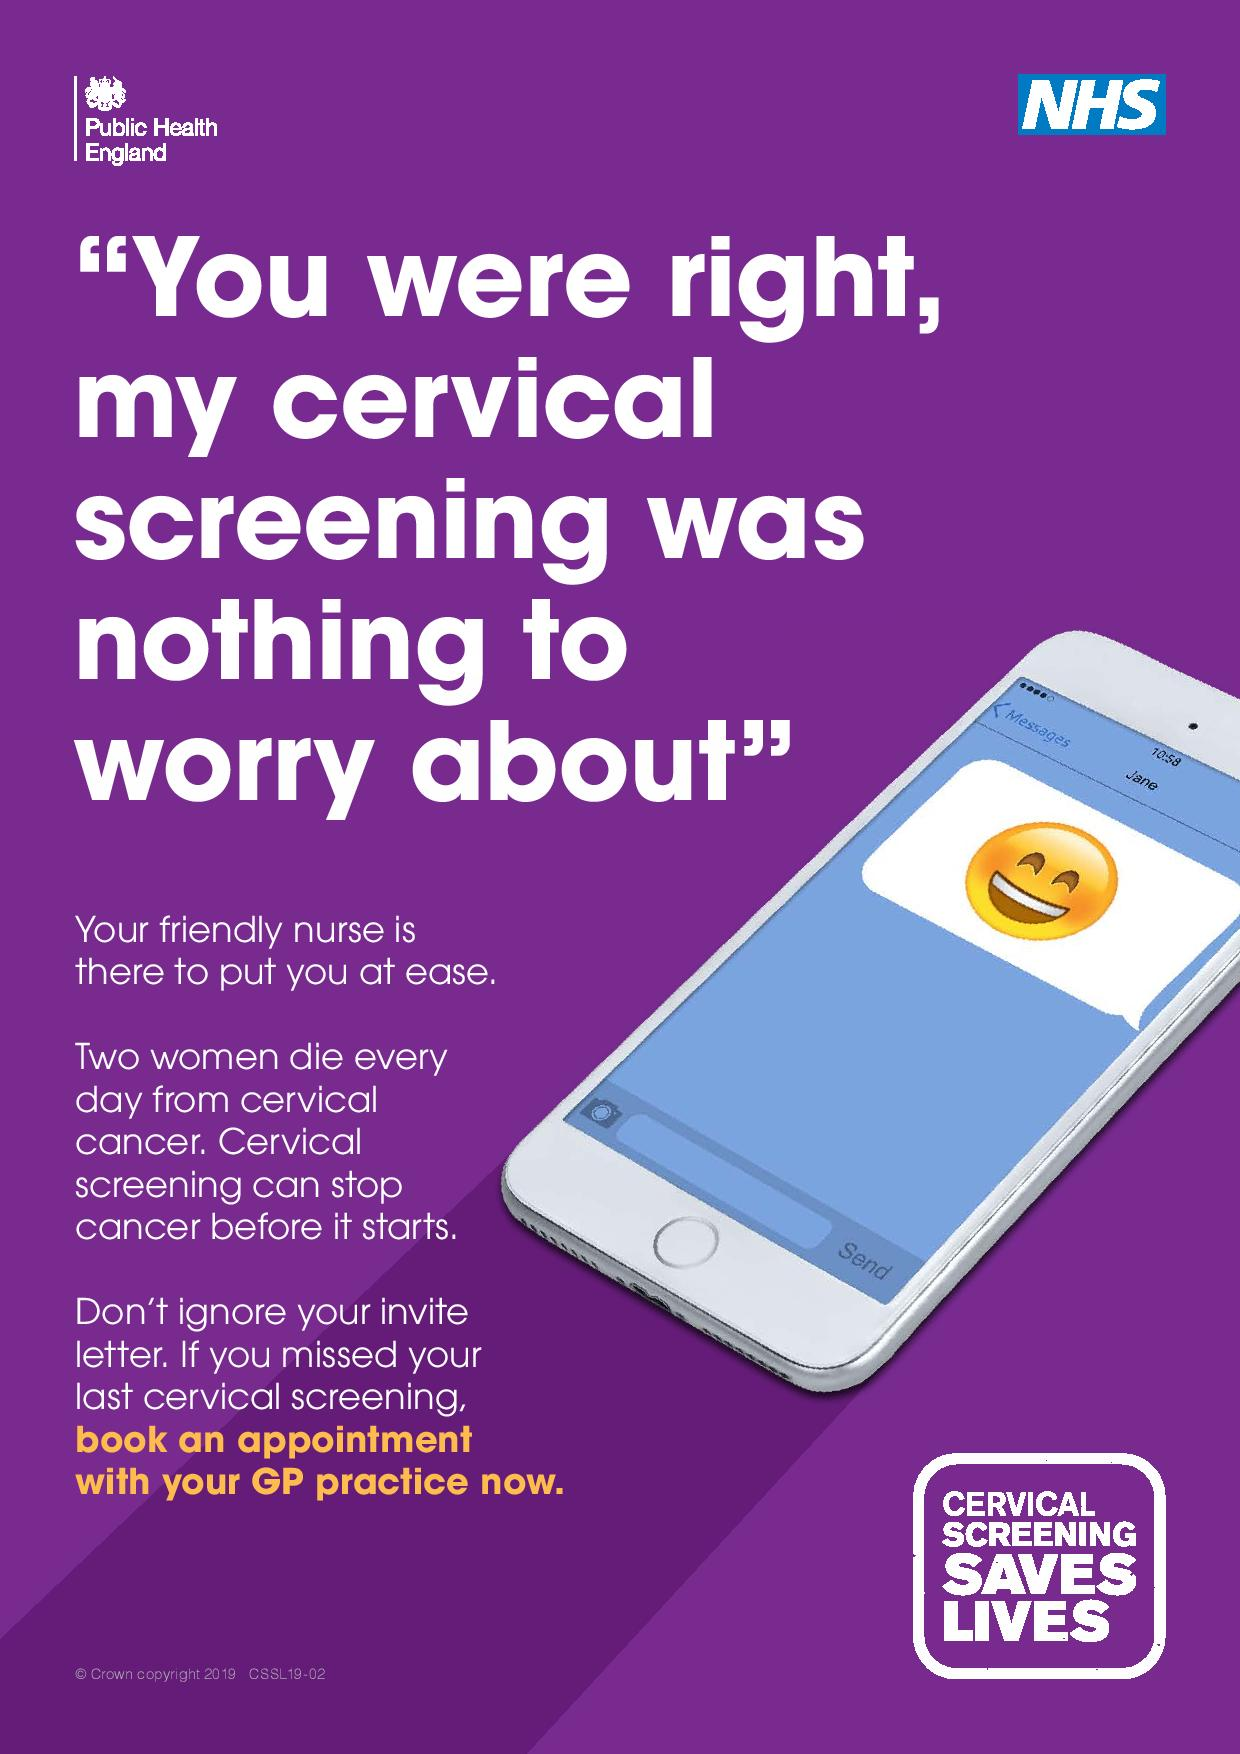 You were right my cervical screening was nothing to worry about Cervical screening saves lives